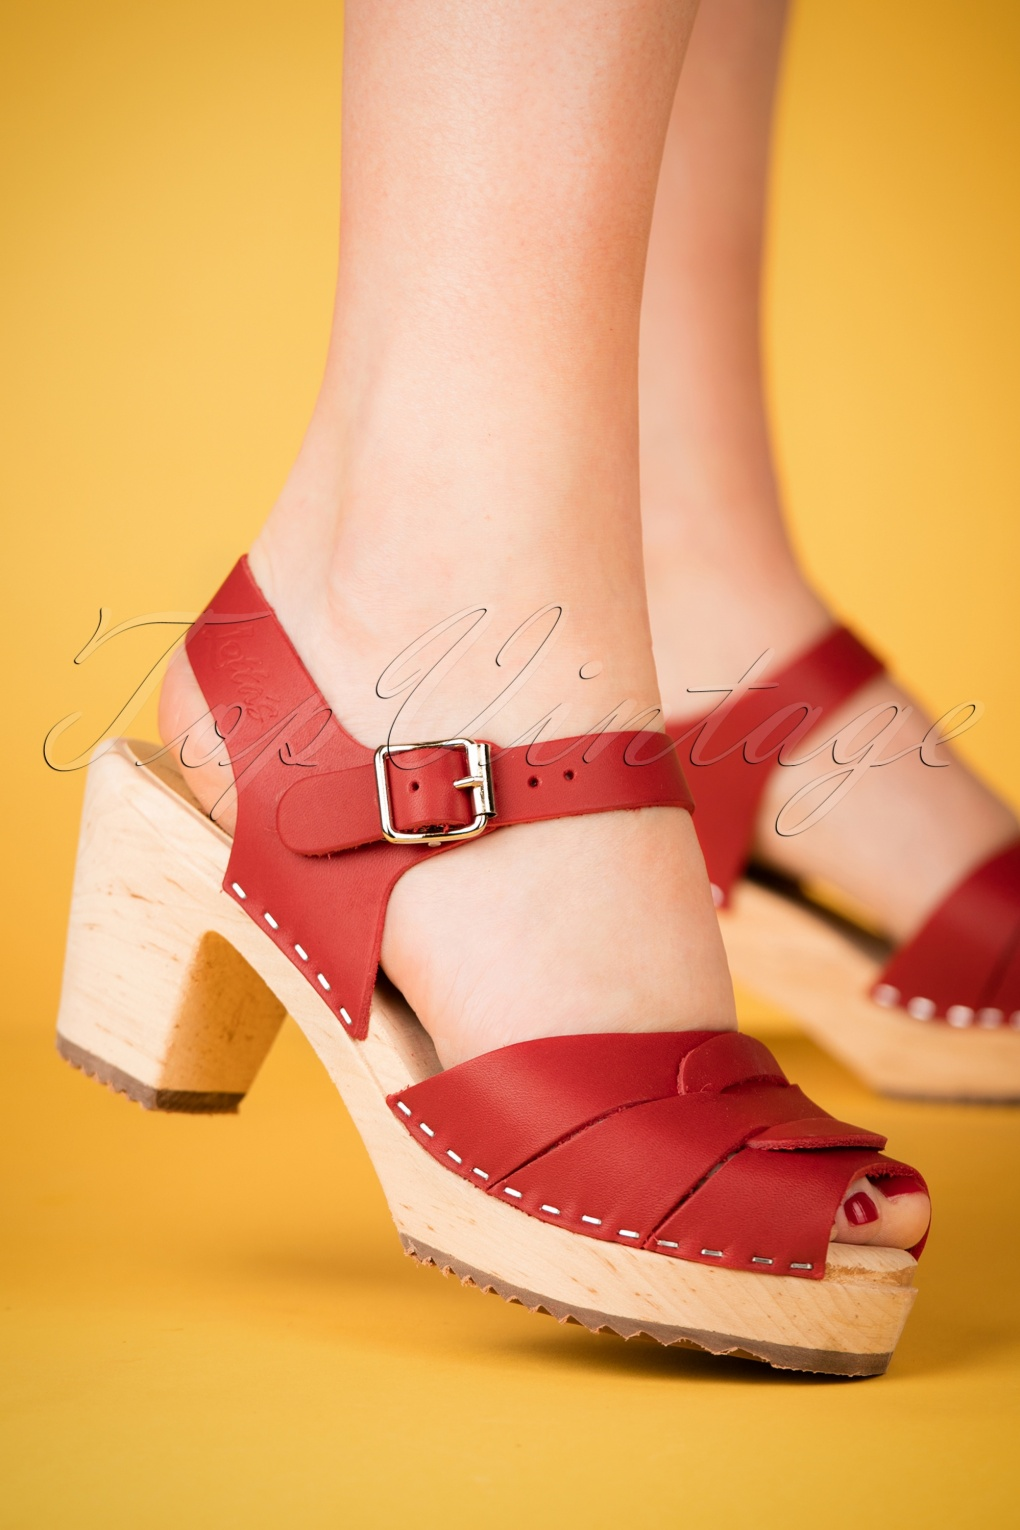 Vintage Style Shoes, Vintage Inspired Shoes 60s Loretta Leather Clogs in Red £70.32 AT vintagedancer.com